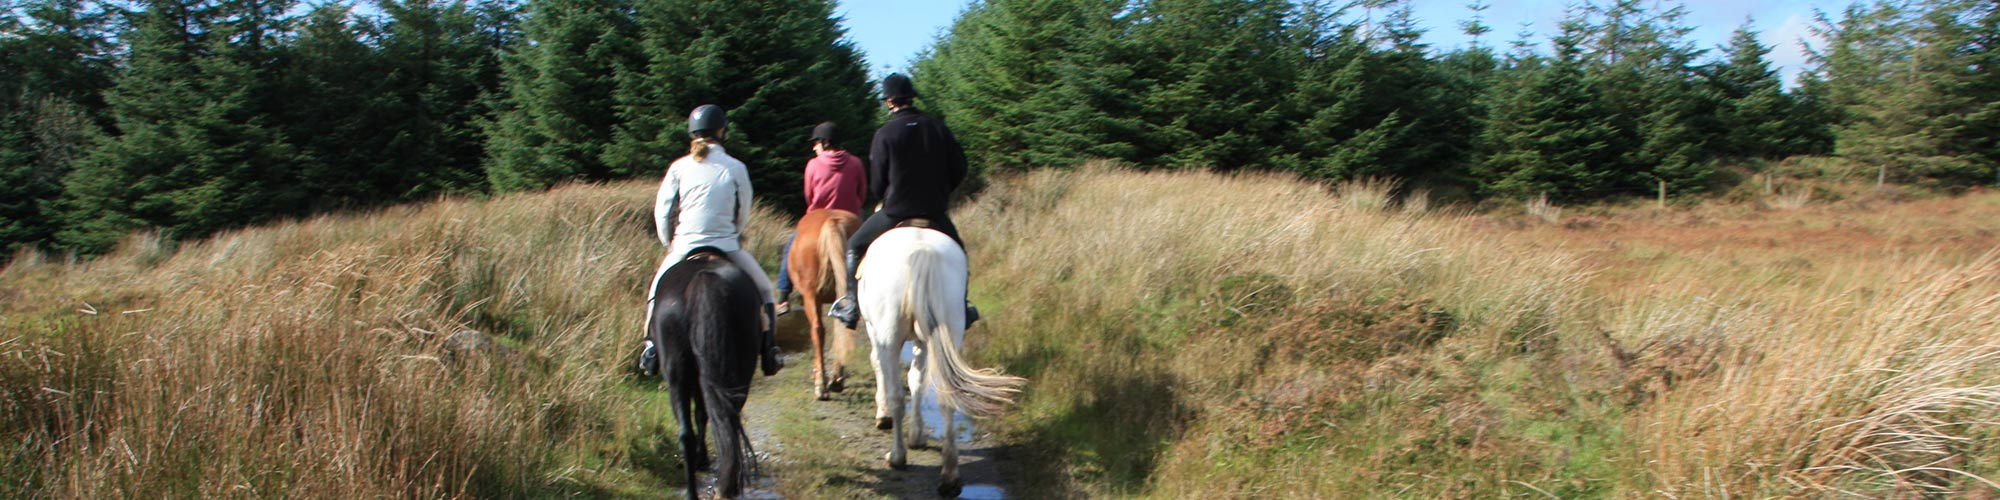 horse riding nature trail ireland